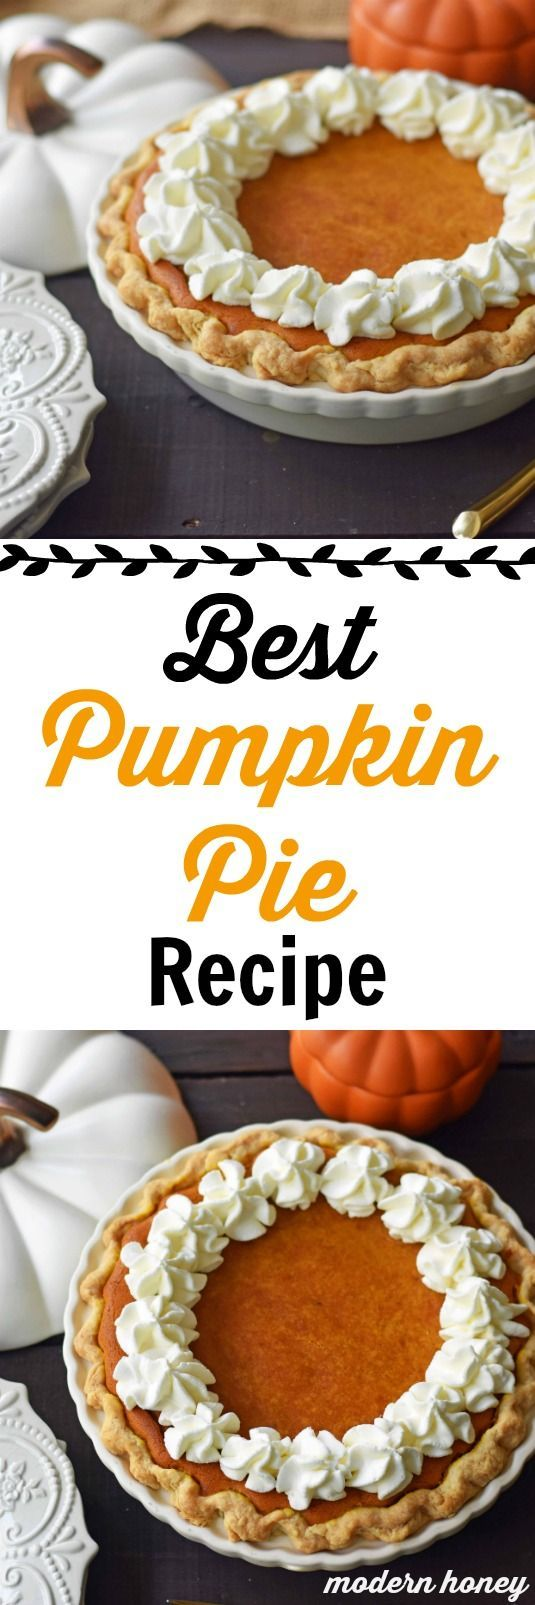 The Best Pumpkin Pie Recipe with a Flaky Buttery Crust and Fresh Whipped Cream. A Pumpkin Cream Cheese Pie that is sweet and creamy. A perfect pumpkin pie! www.modernhoney.com